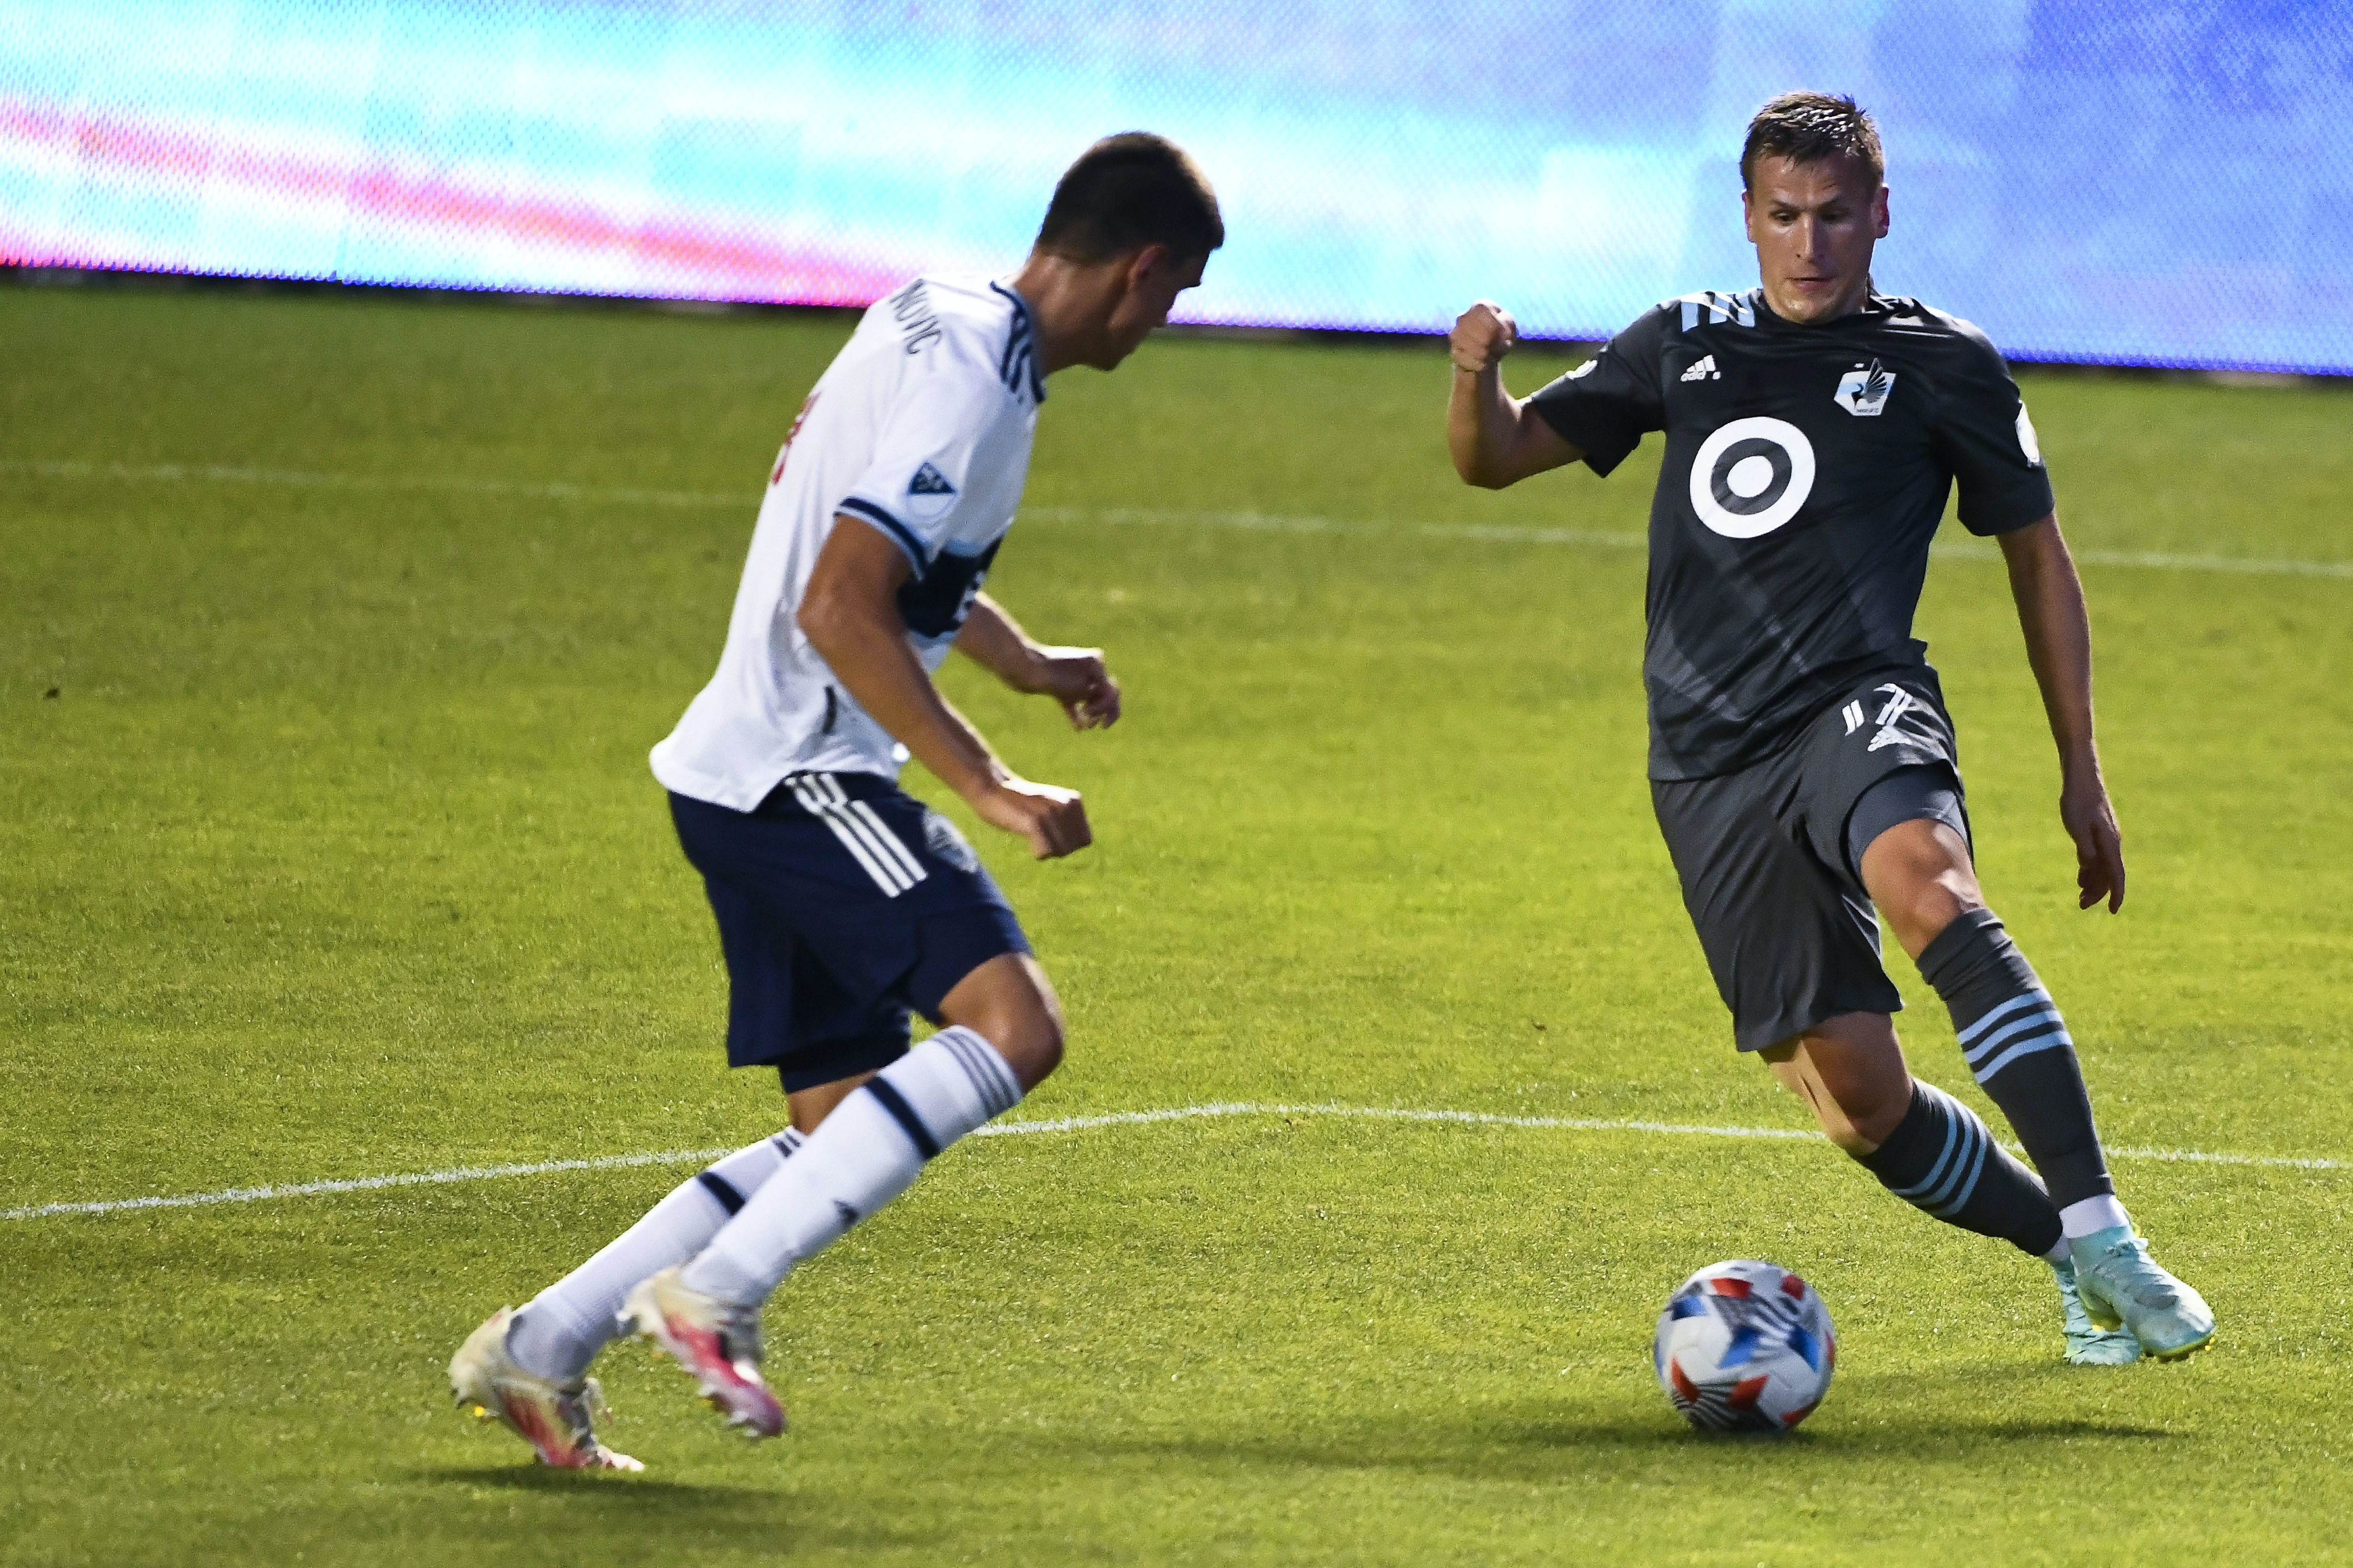 Late penalty allows Vancouver to come back for 2-2 draw with Loons